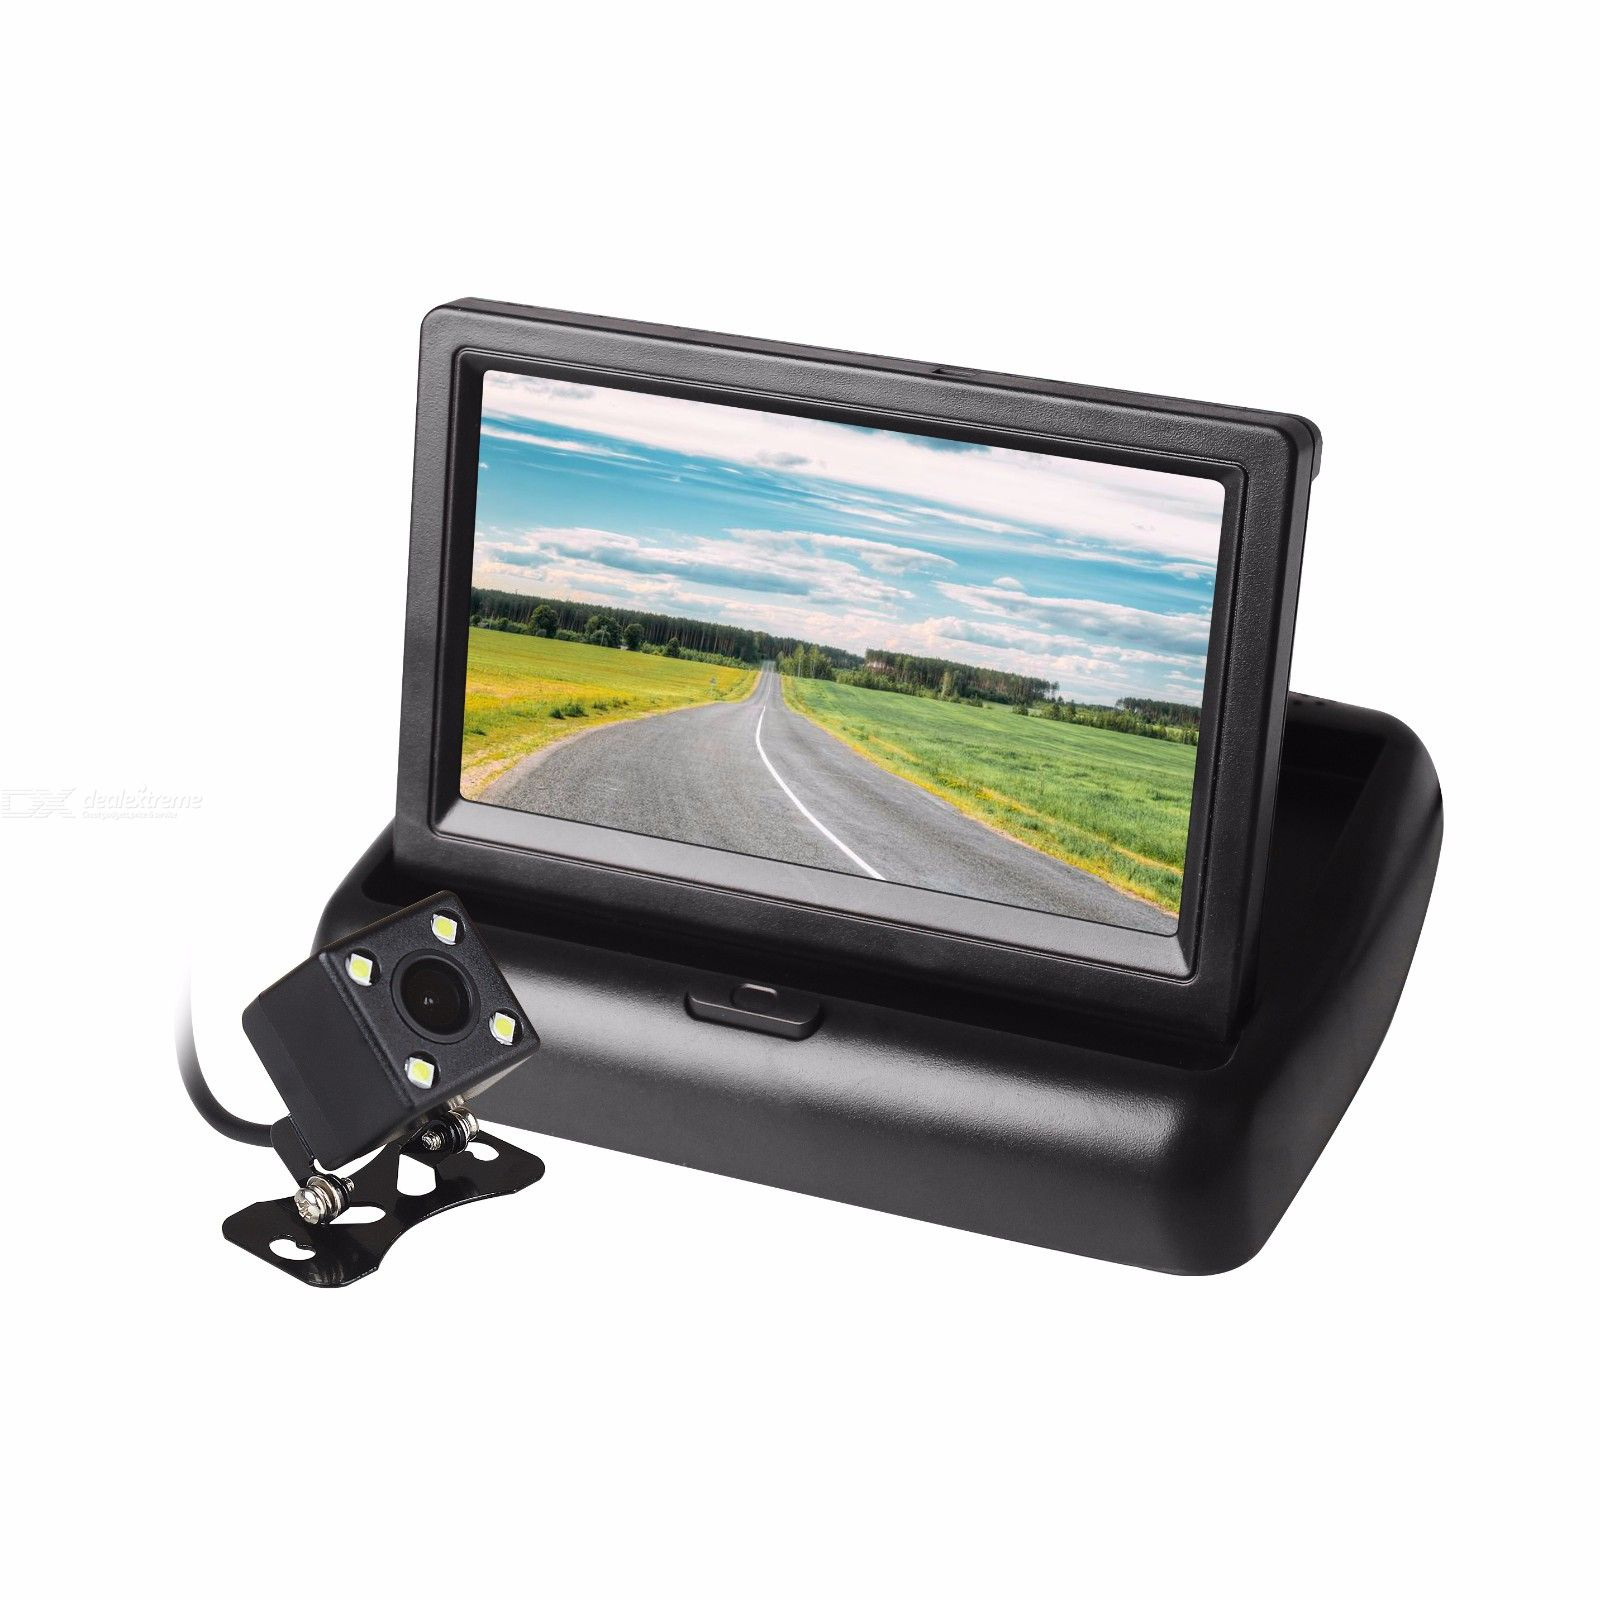 ZIQIAO 4.3 Inch Folding Car LCD Screen Monitor and LED Backup Rearview Camera 170 Degree Wide Angle Black